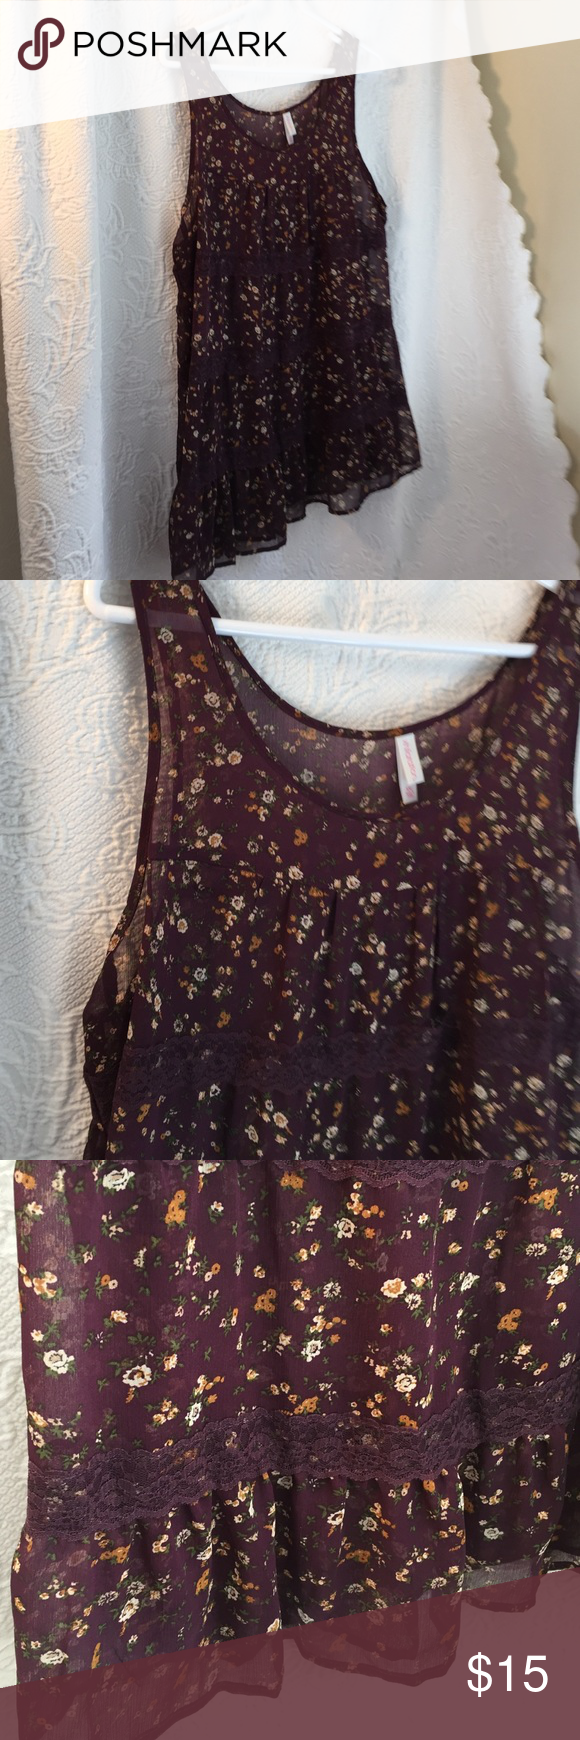 Xhileration lace and print top Xhileration lace and print top Very pretty Xhilaration Tops Tank Tops